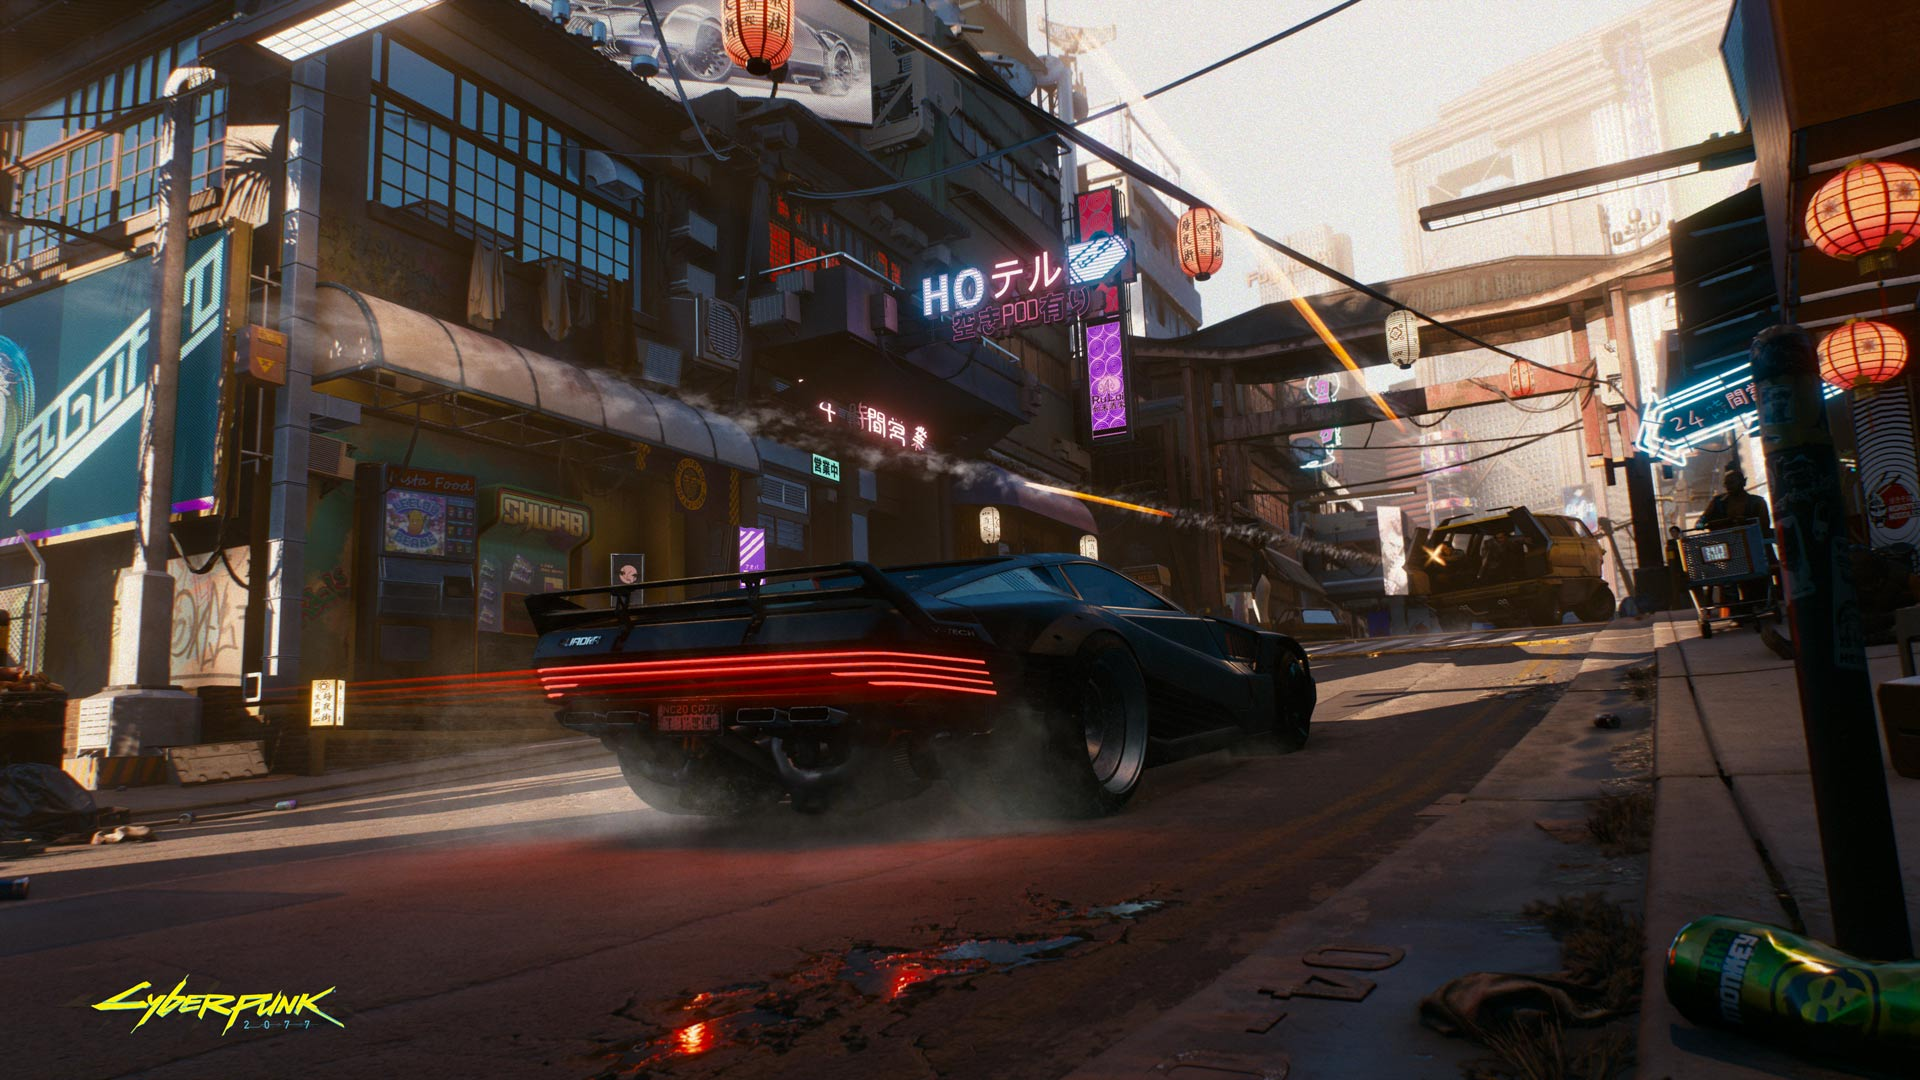 Cyberpunk 2077's issues have drawn investigation from the Polish government